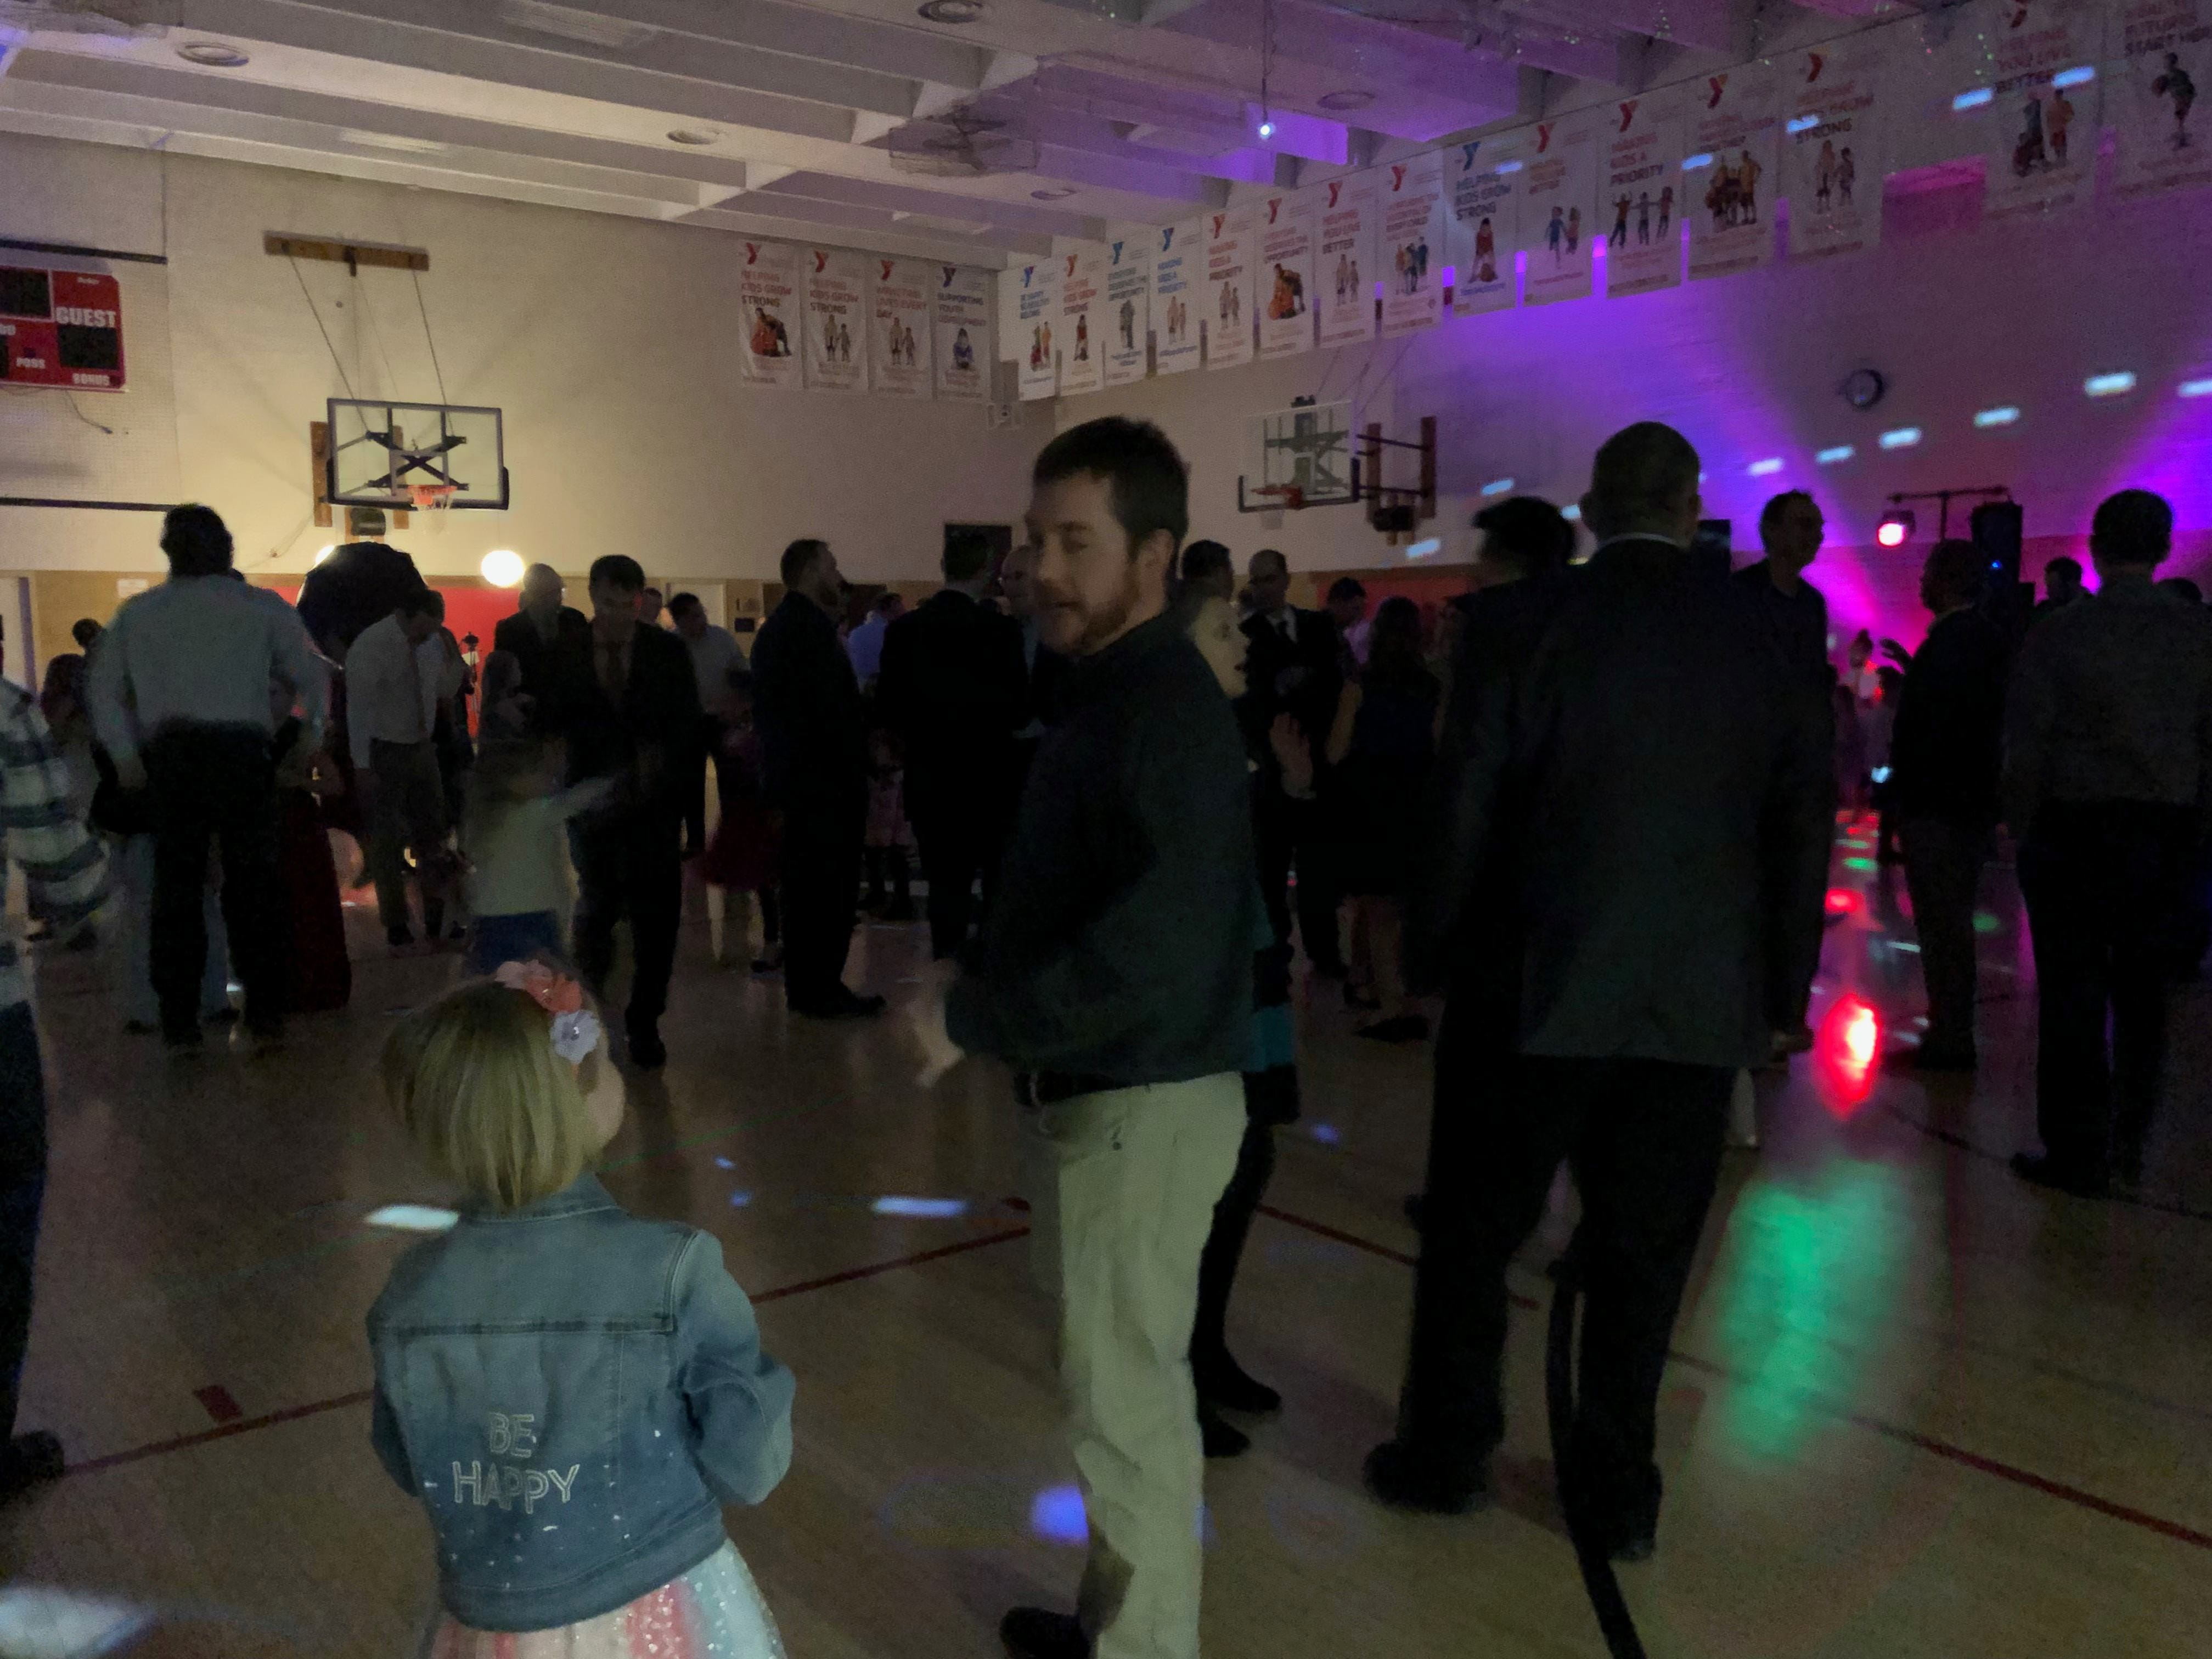 Fathers and daughters enjoy a night out at the annual Woodson YMCA Father Daughter dance, which included a dance floor in the basketball gym.